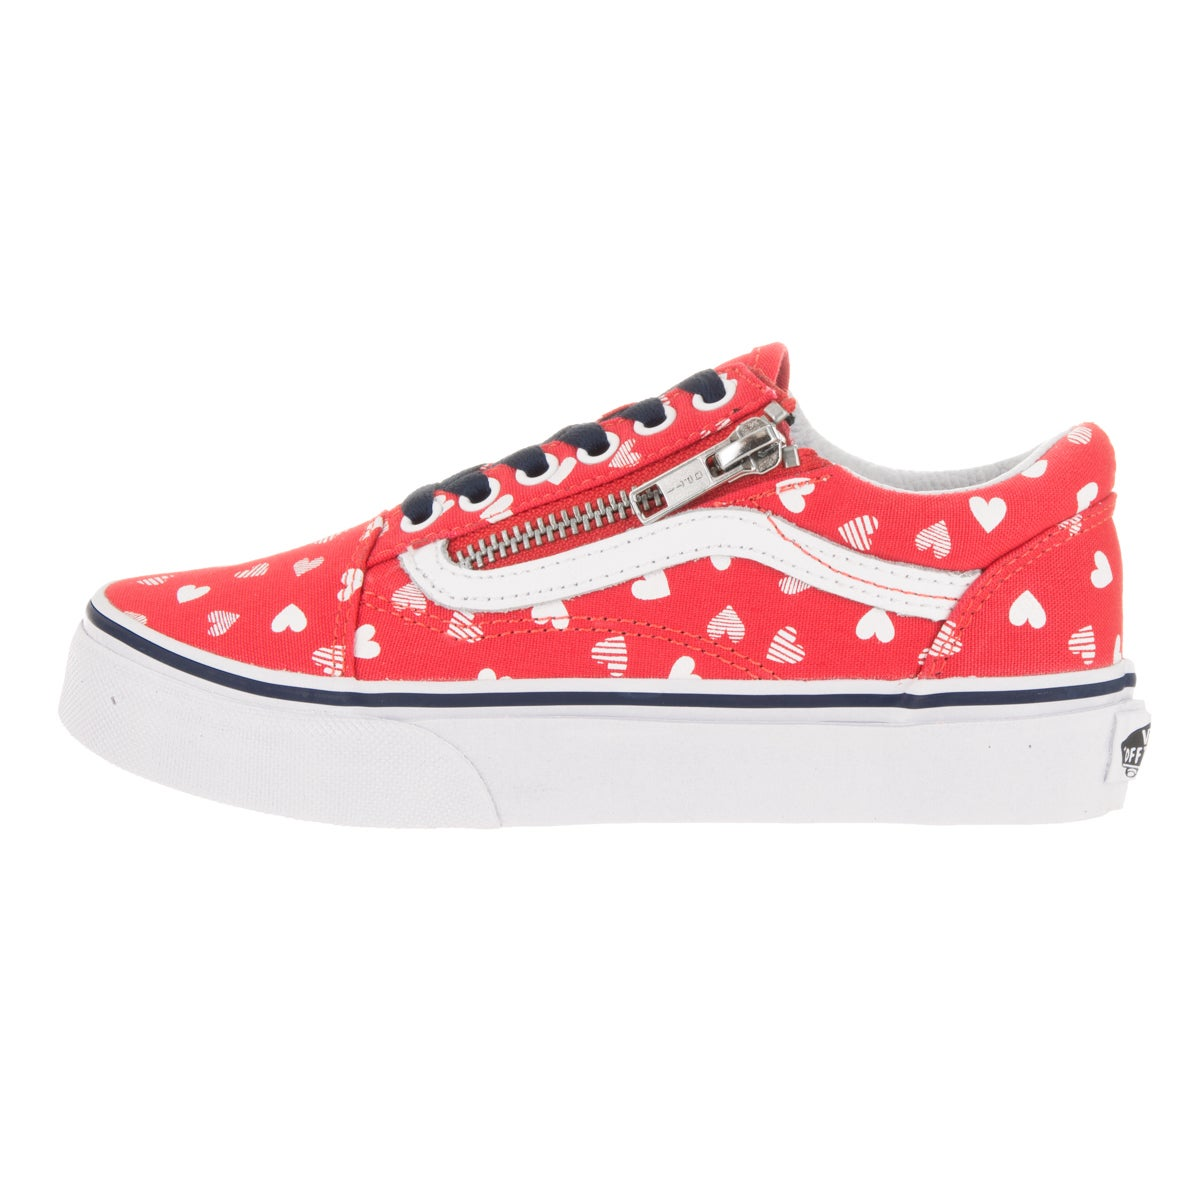 c2887005cc37 Shop Vans Kids  Old Skool Zip Hearts Hibiscus and True White Canvas Skate  Shoes - Free Shipping Today - Overstock - 13394617